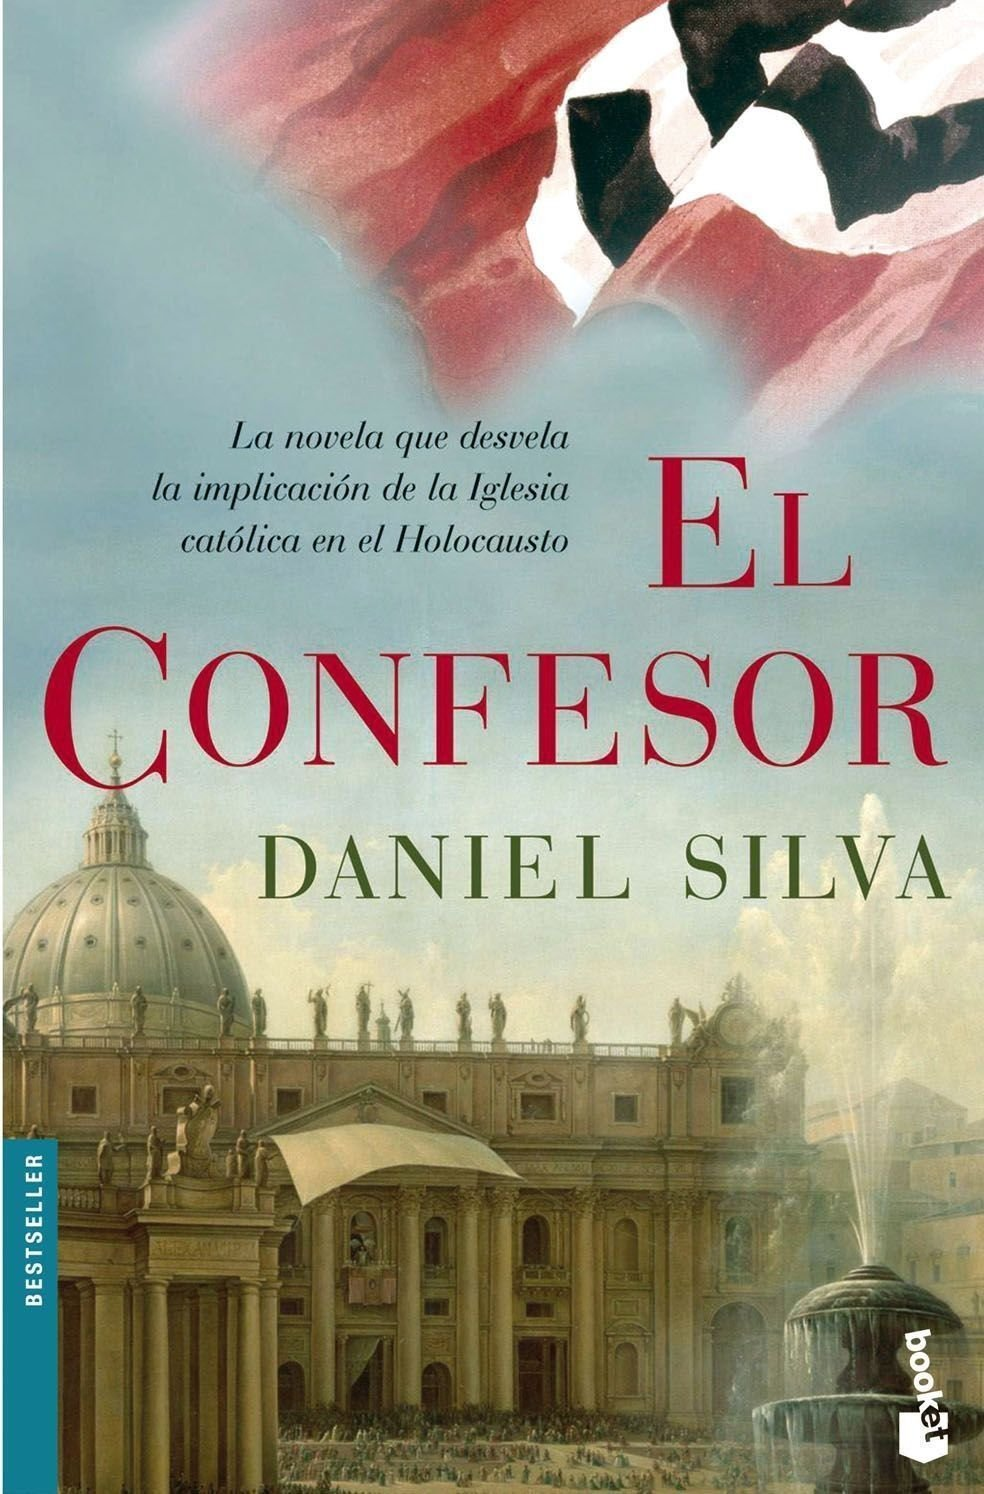 The Confessor (spanish Edition): Daniel Silva: 9788408067023:  Amazon: Books